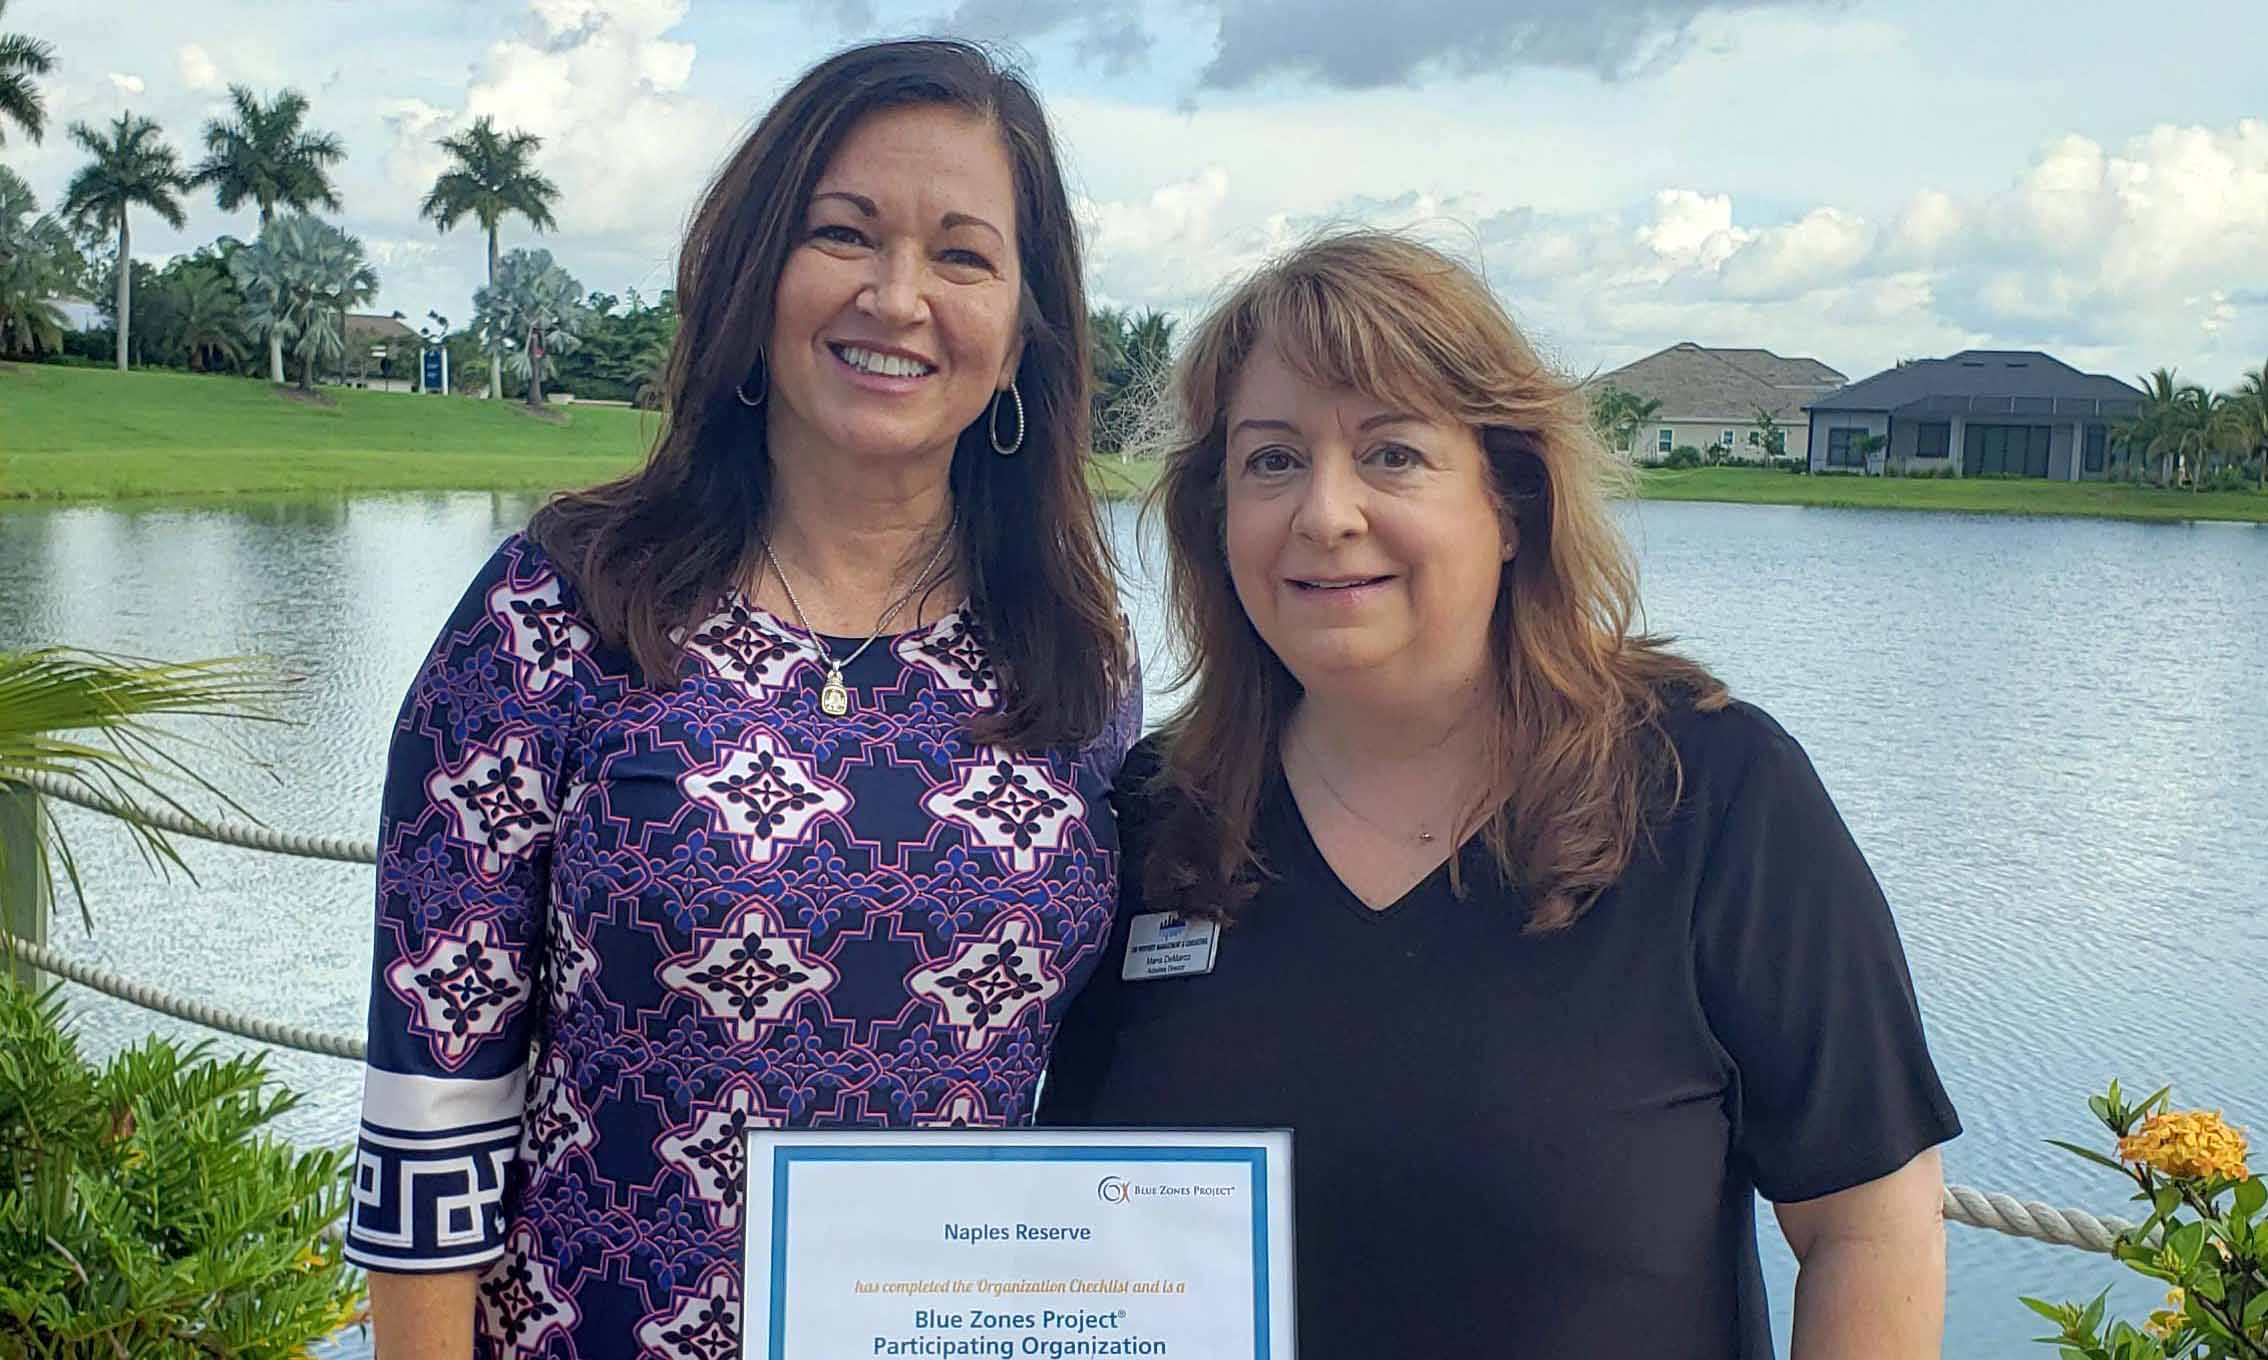 Naples Reserve's Homeowners Association earns Blue Zones Project Recognition